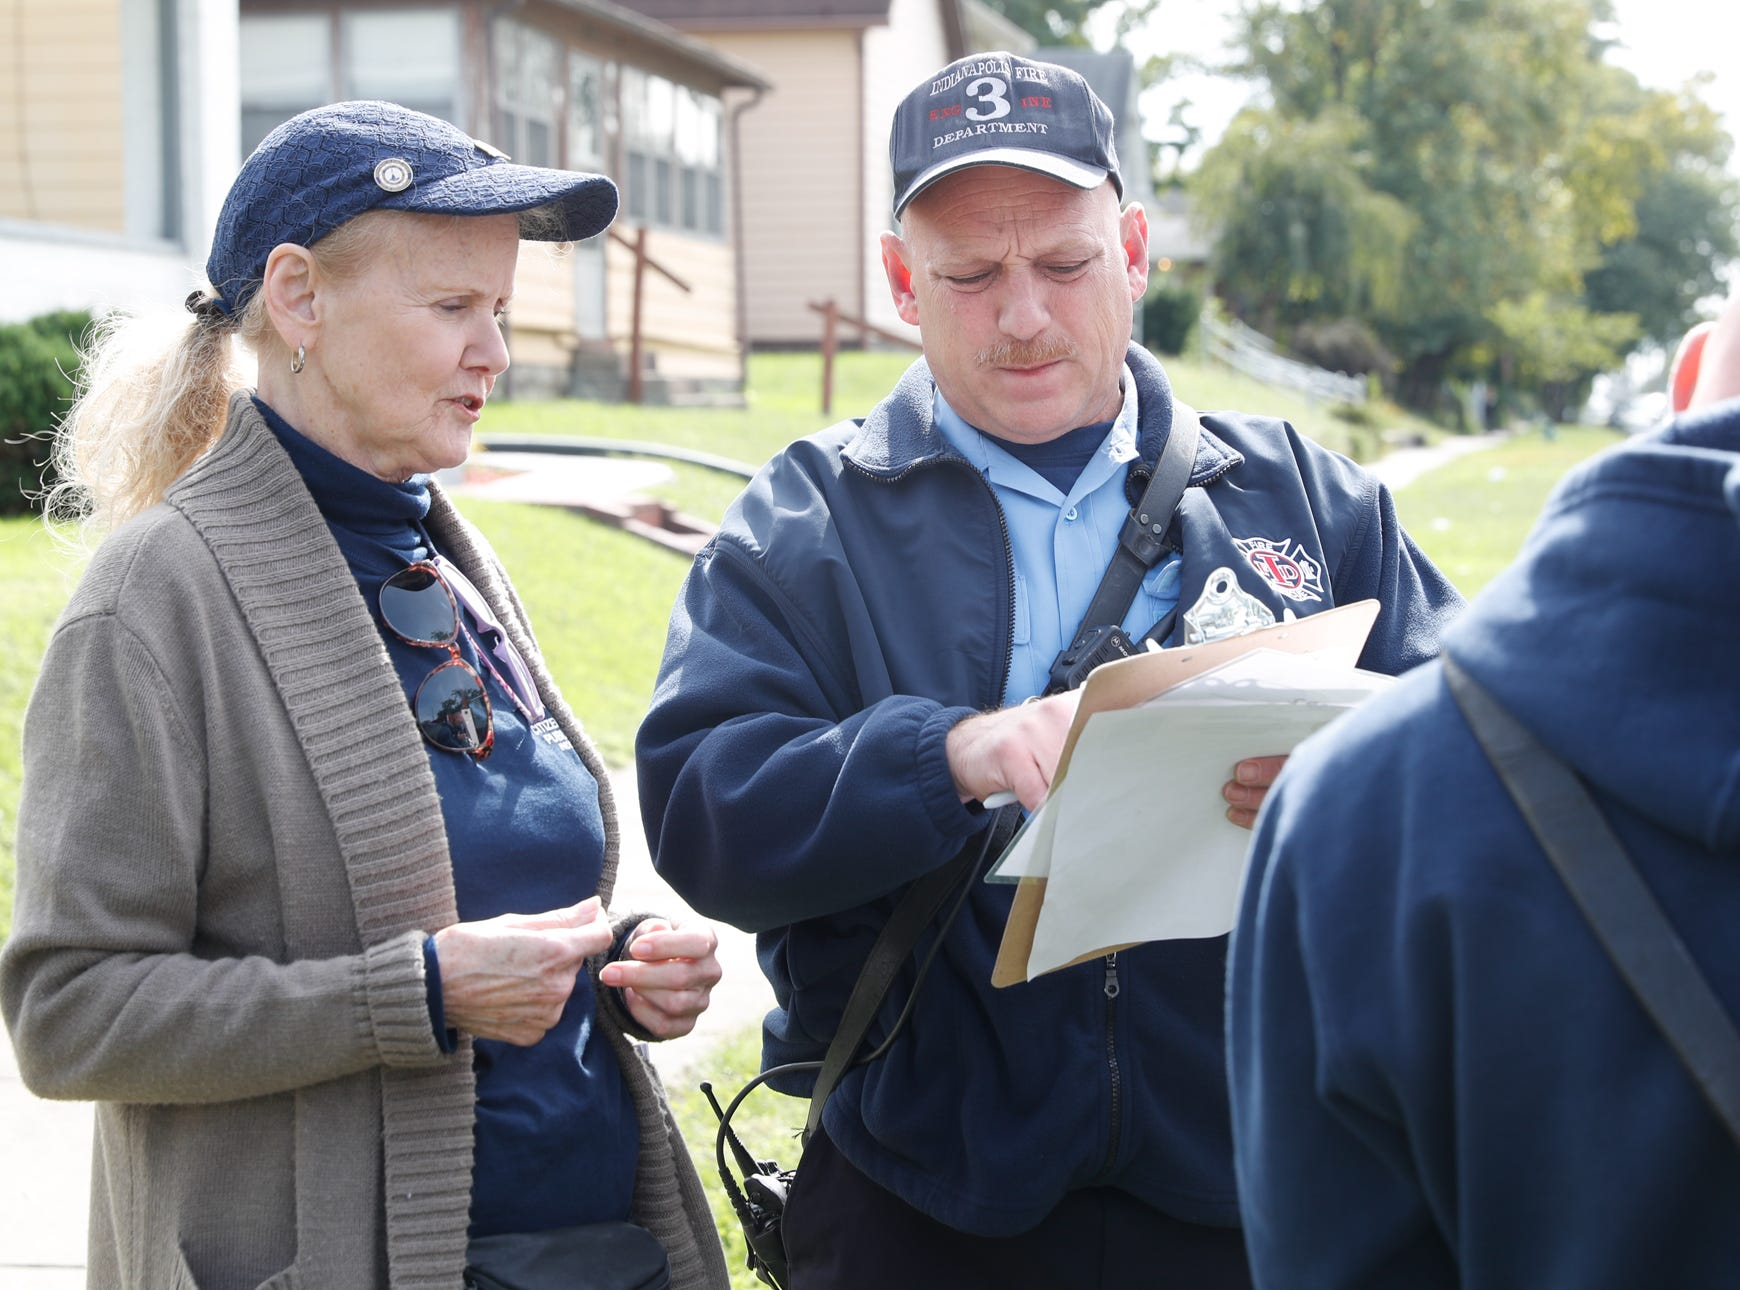 Volunteer Lana Stevens, left, with the Citizens Alliance for Public Safety,  and Firefighter Paul Lambert , center, go door to door delivering safety materials including smoke alarms during IFD's home safety blitz in Indianapolis for National Fire Prevention Week, on Friday, October 12, 2018. IFD chose the area around IFD Station 15 which experienced 9 residential fires in 2018 for the blitz.